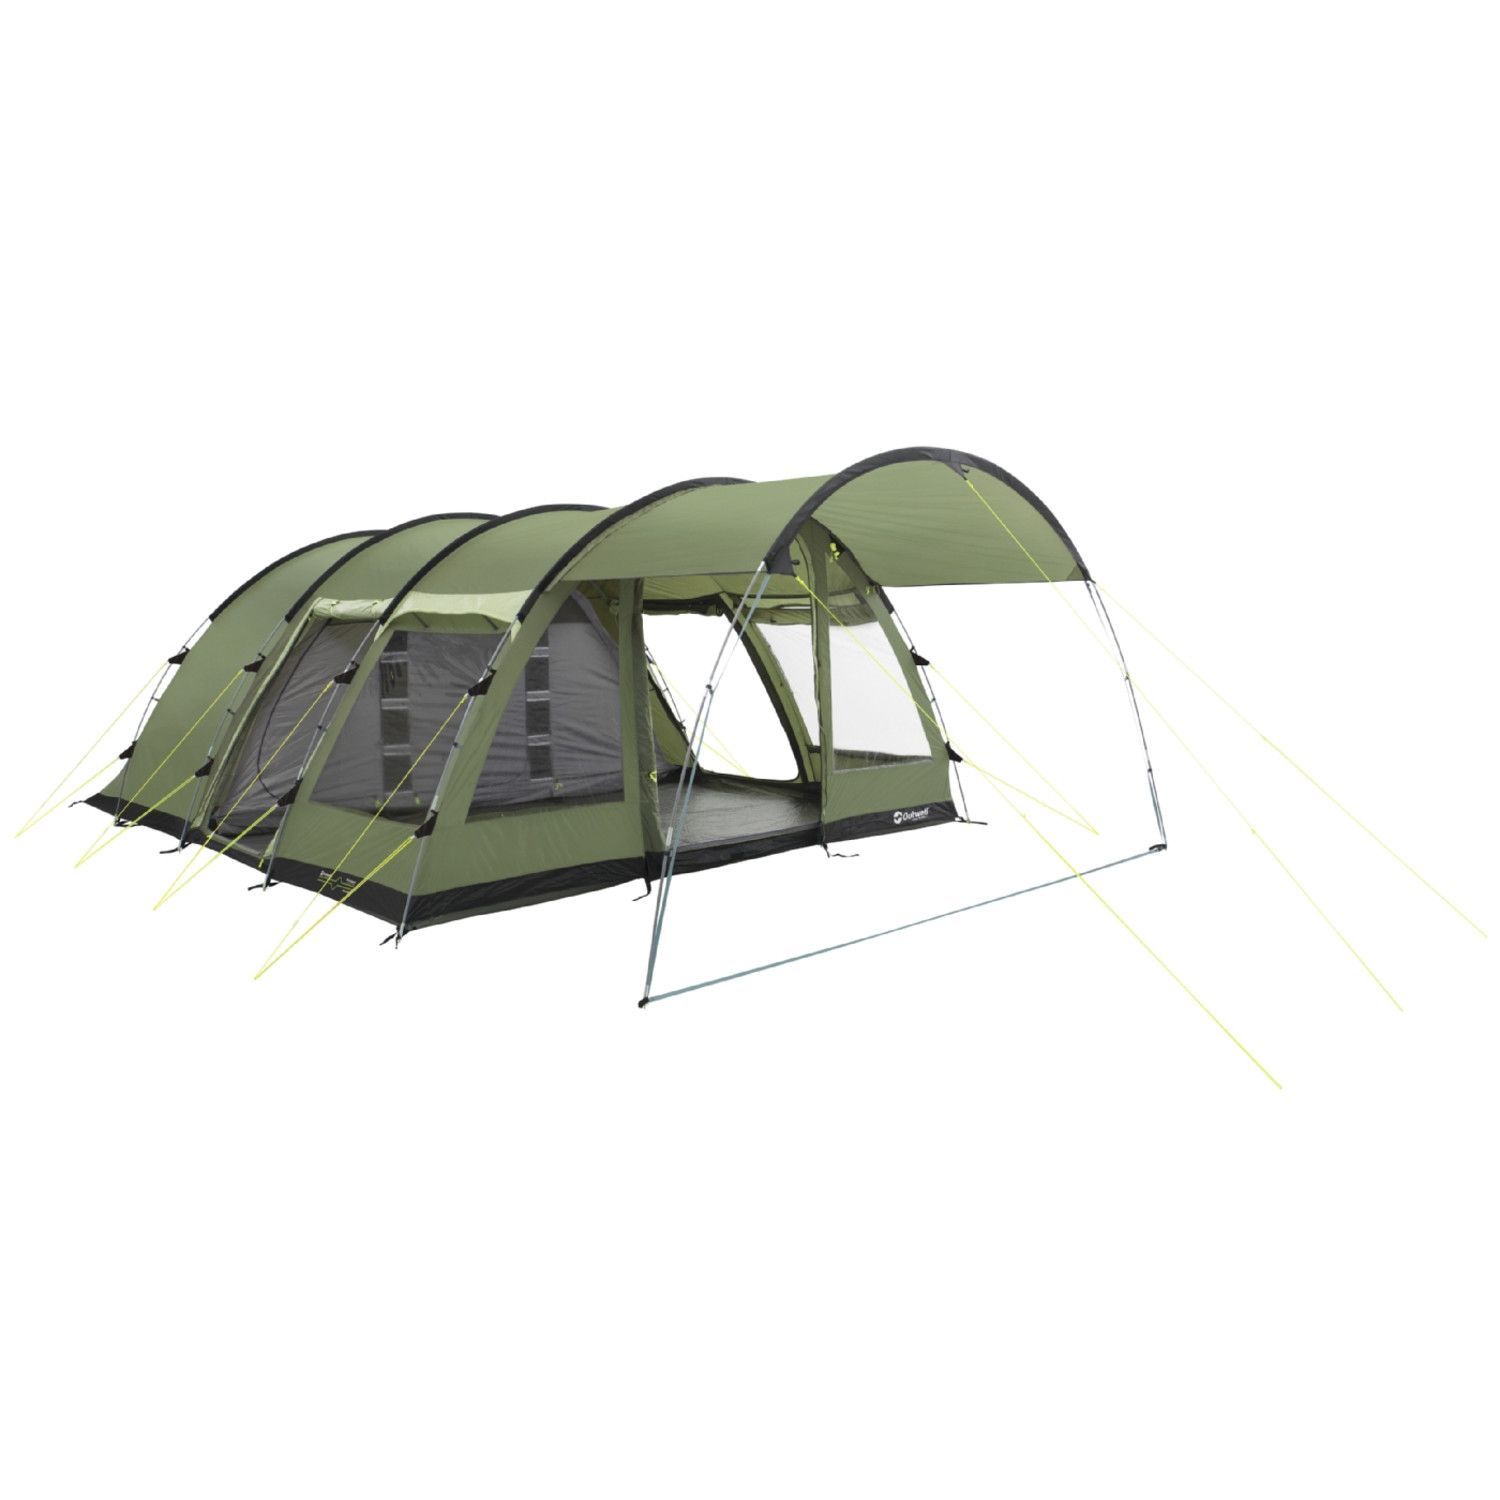 Outwell Amarillo 6 Family Tent | Outwell Tents | Pinterest | Tent ...